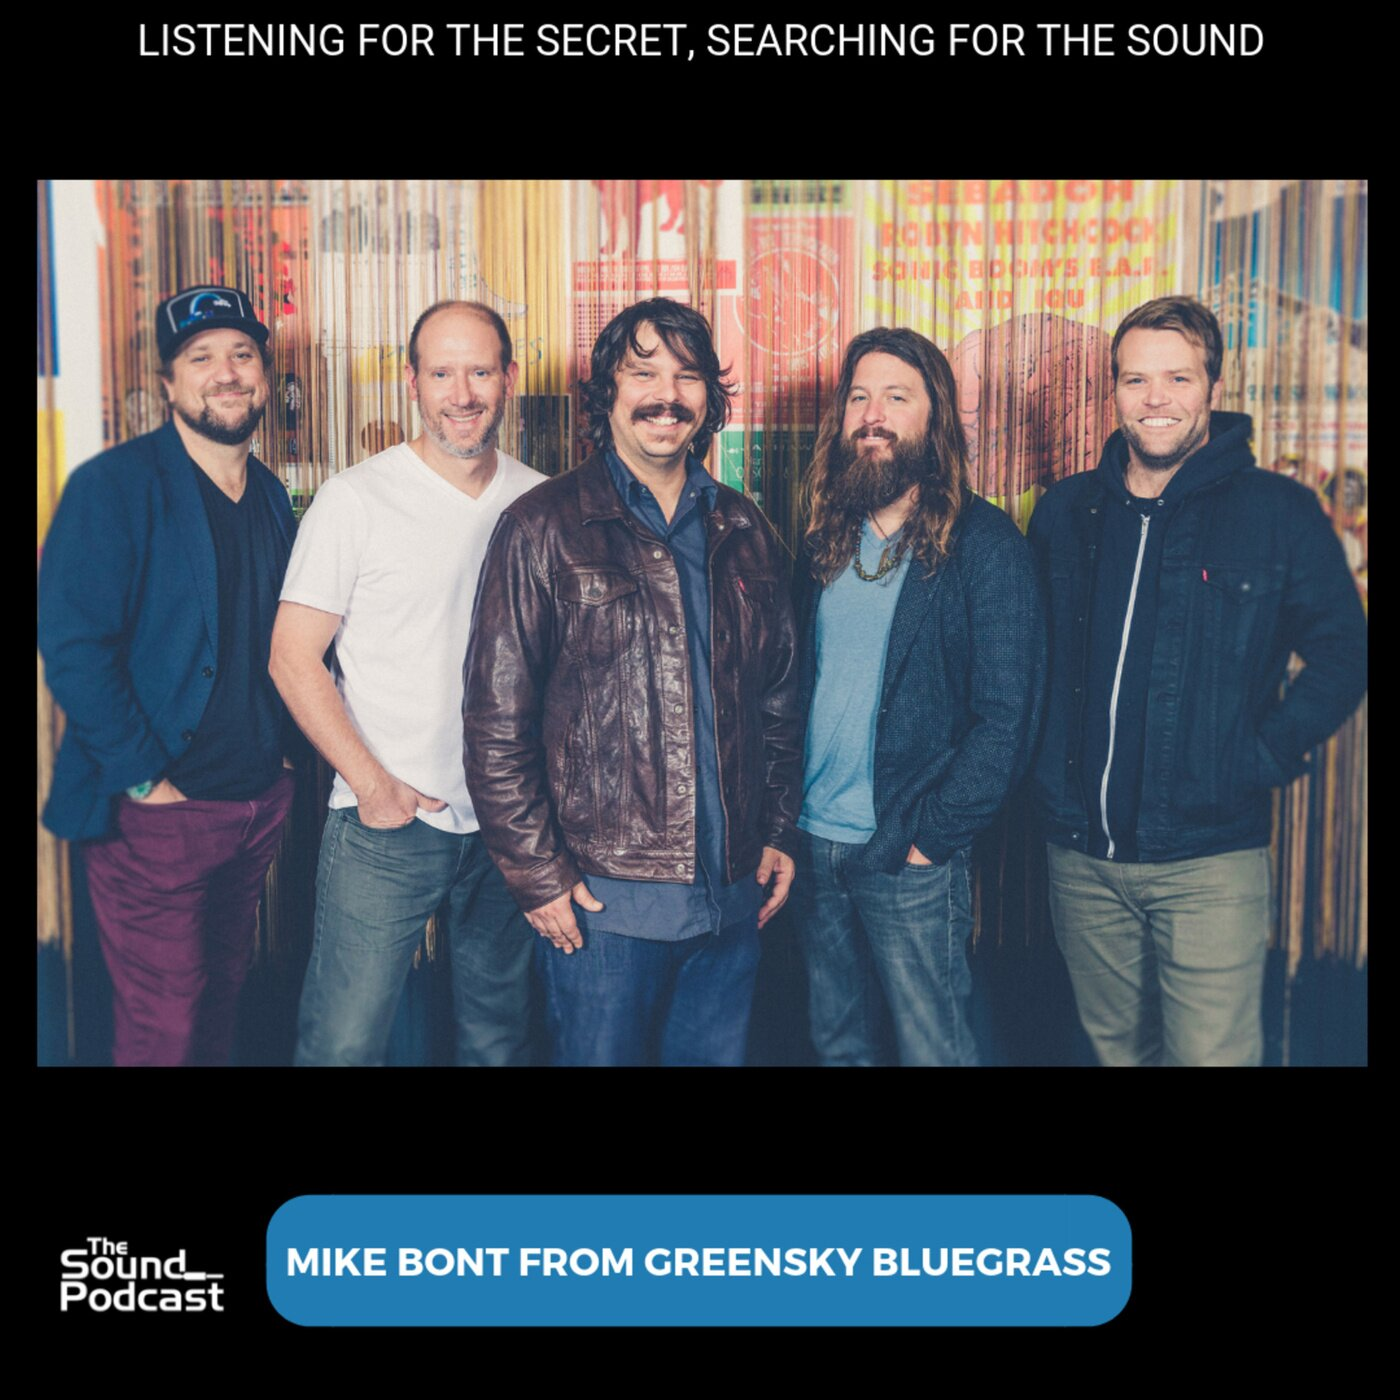 Episode 161: Mike Bont from Greensky Bluegrass